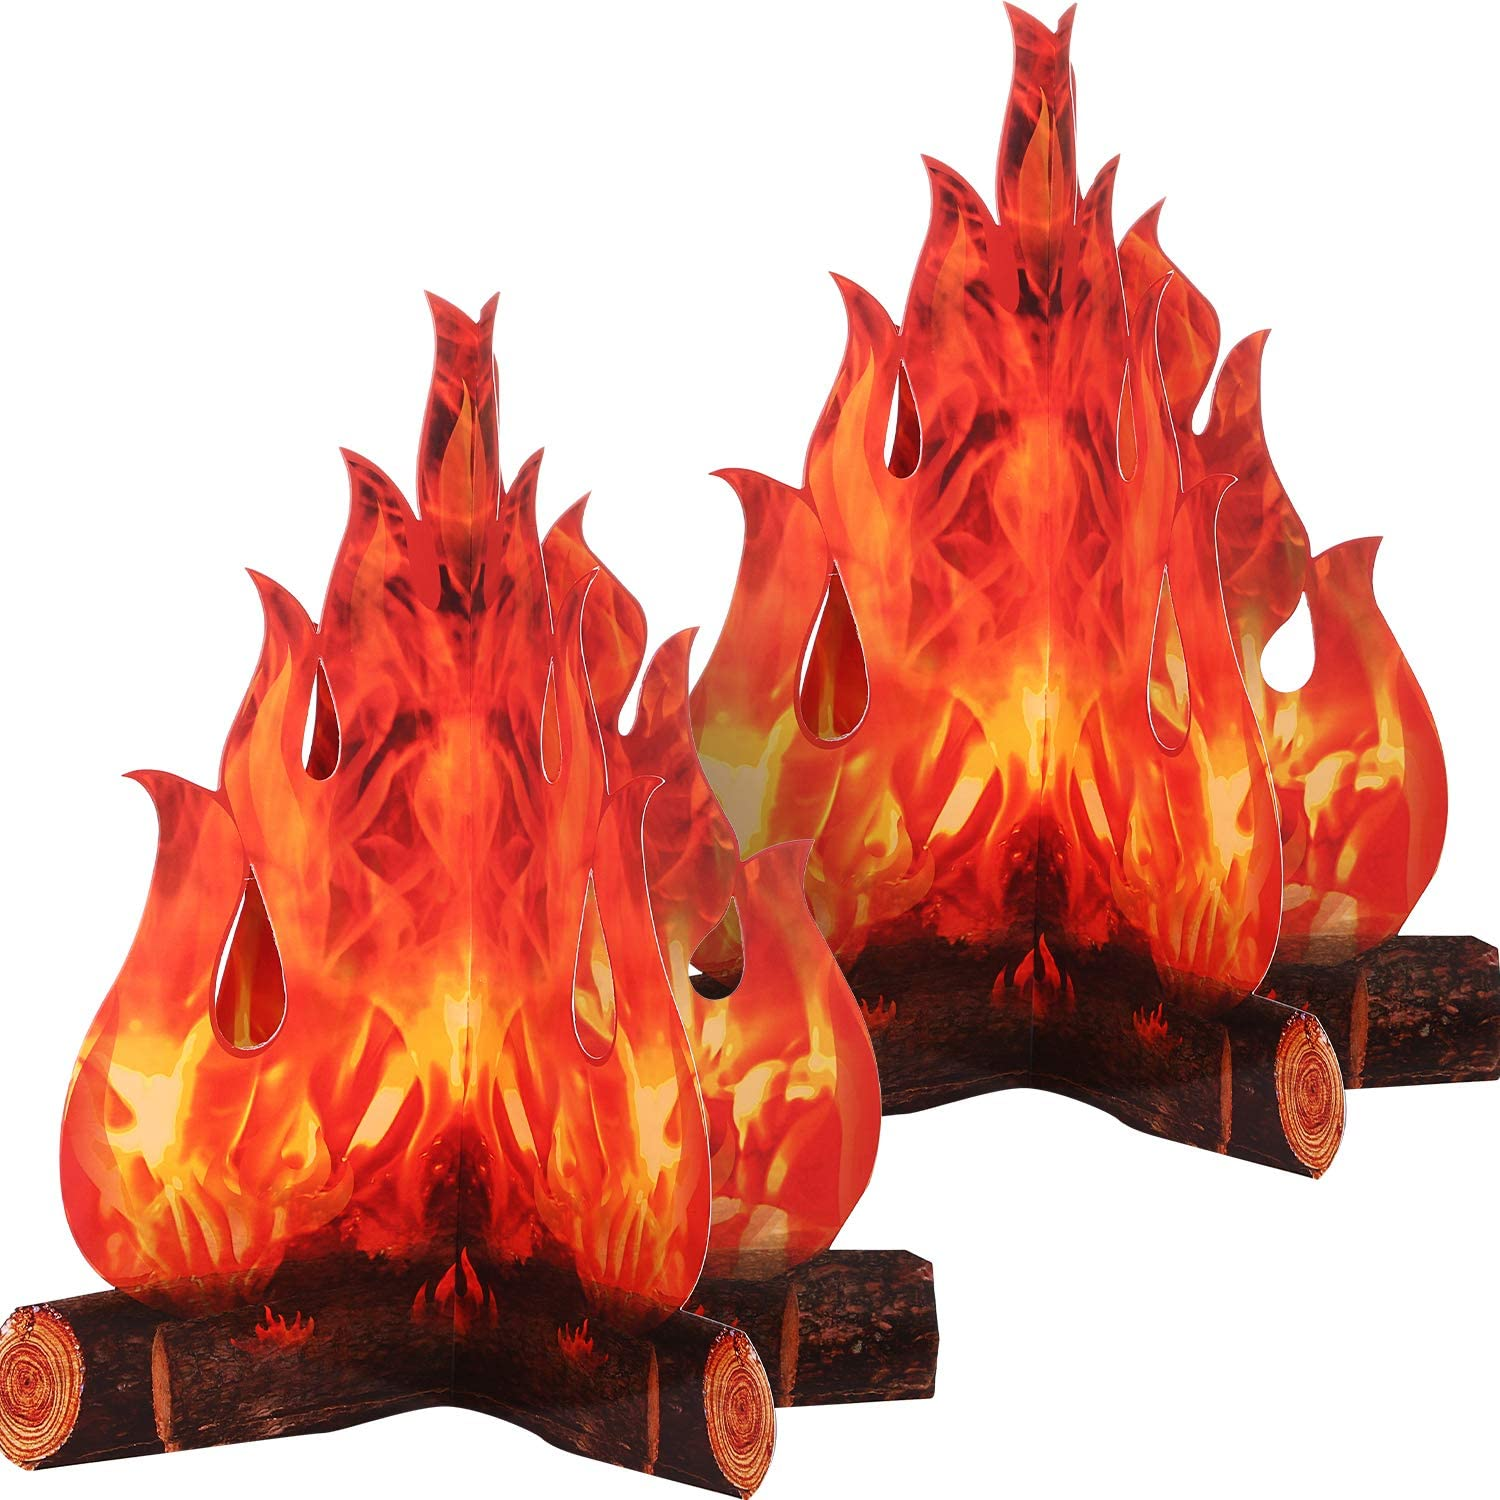 3D Decorative Cardboard Campfire Centerpiece Artificial Fire Fake Flame Paper Party Decorative Flame Torch (Red Orange)